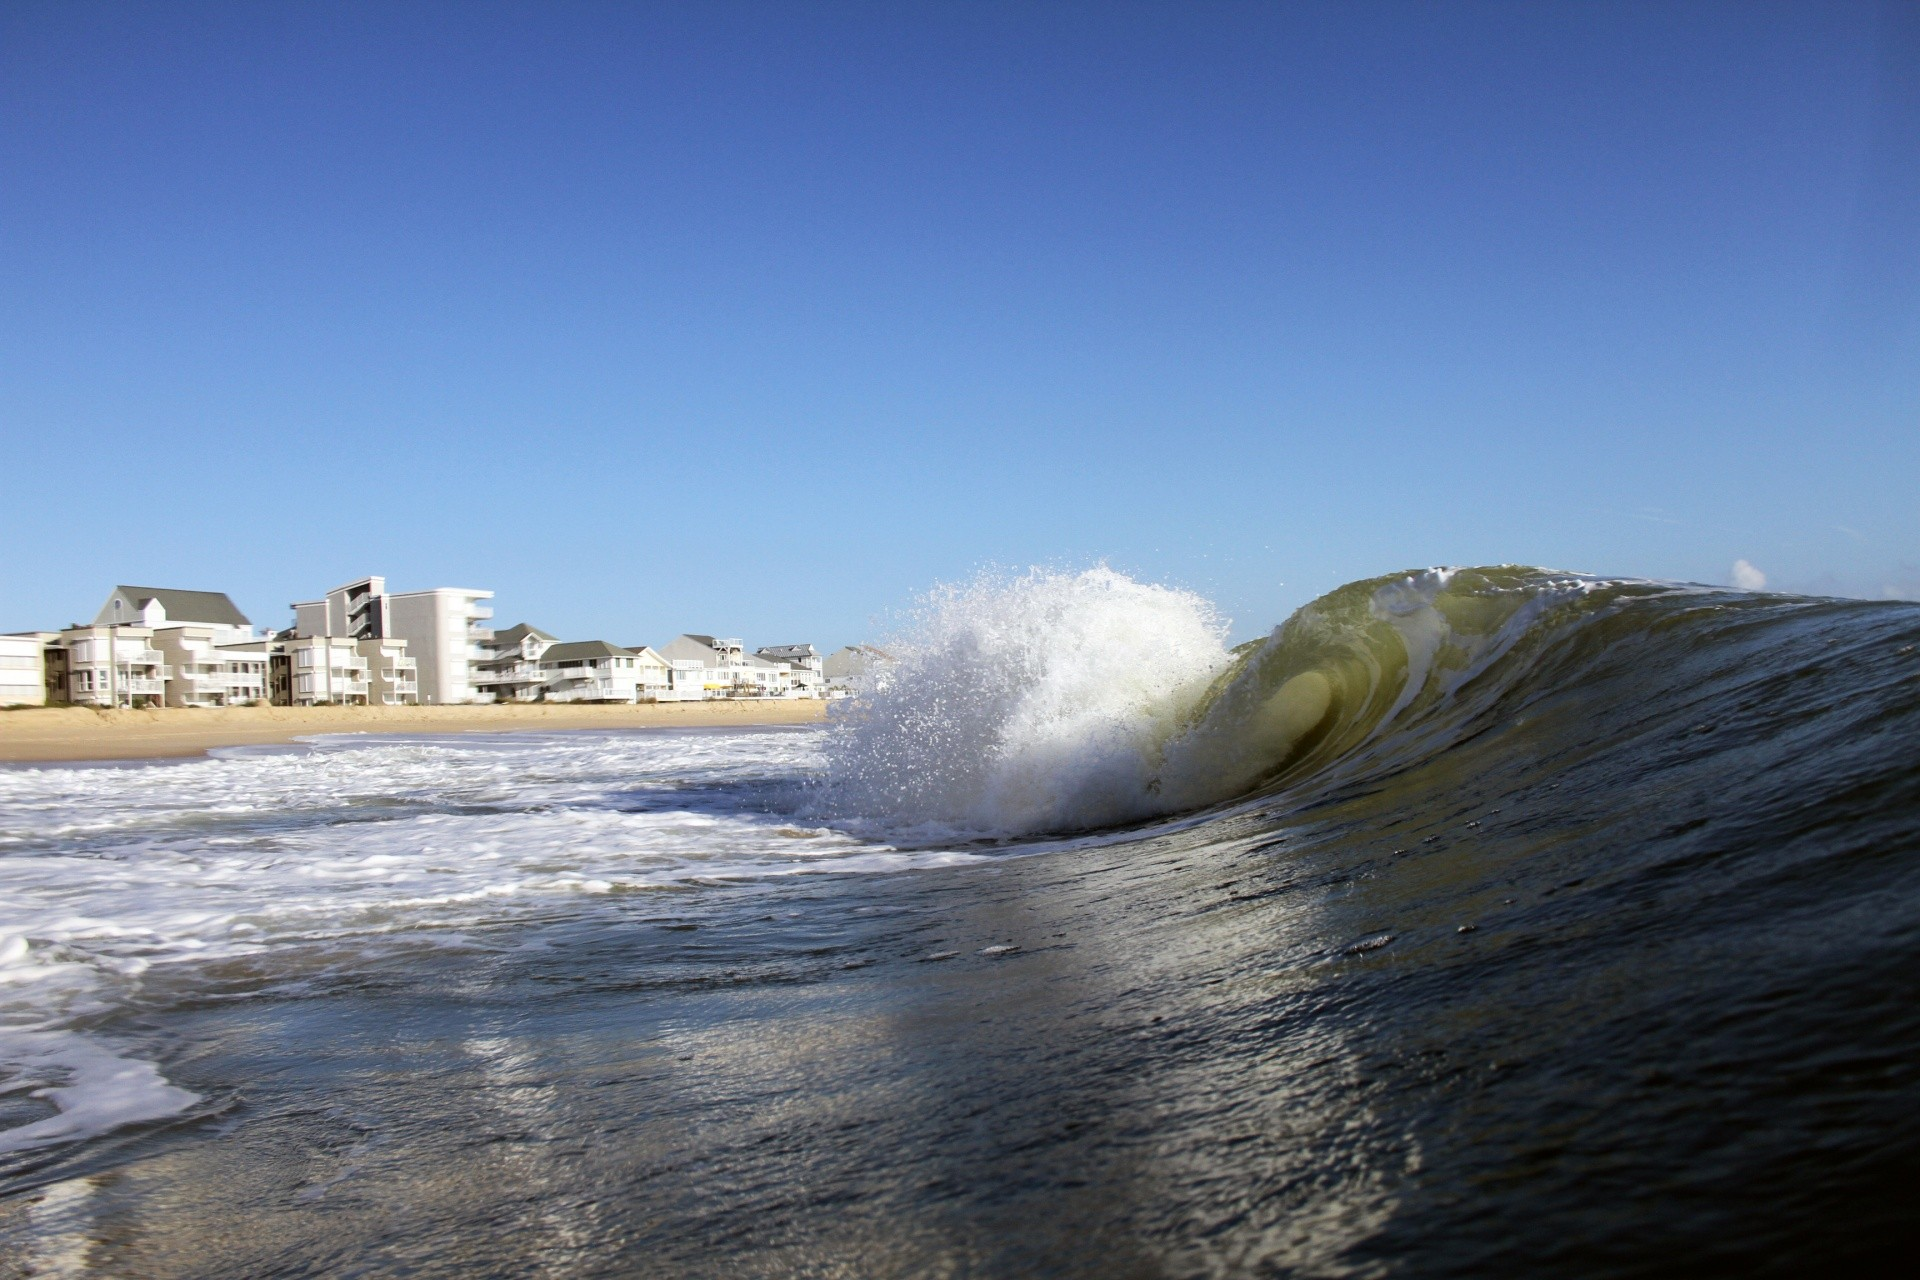 Steve Marino's photo of Ocean City, MD